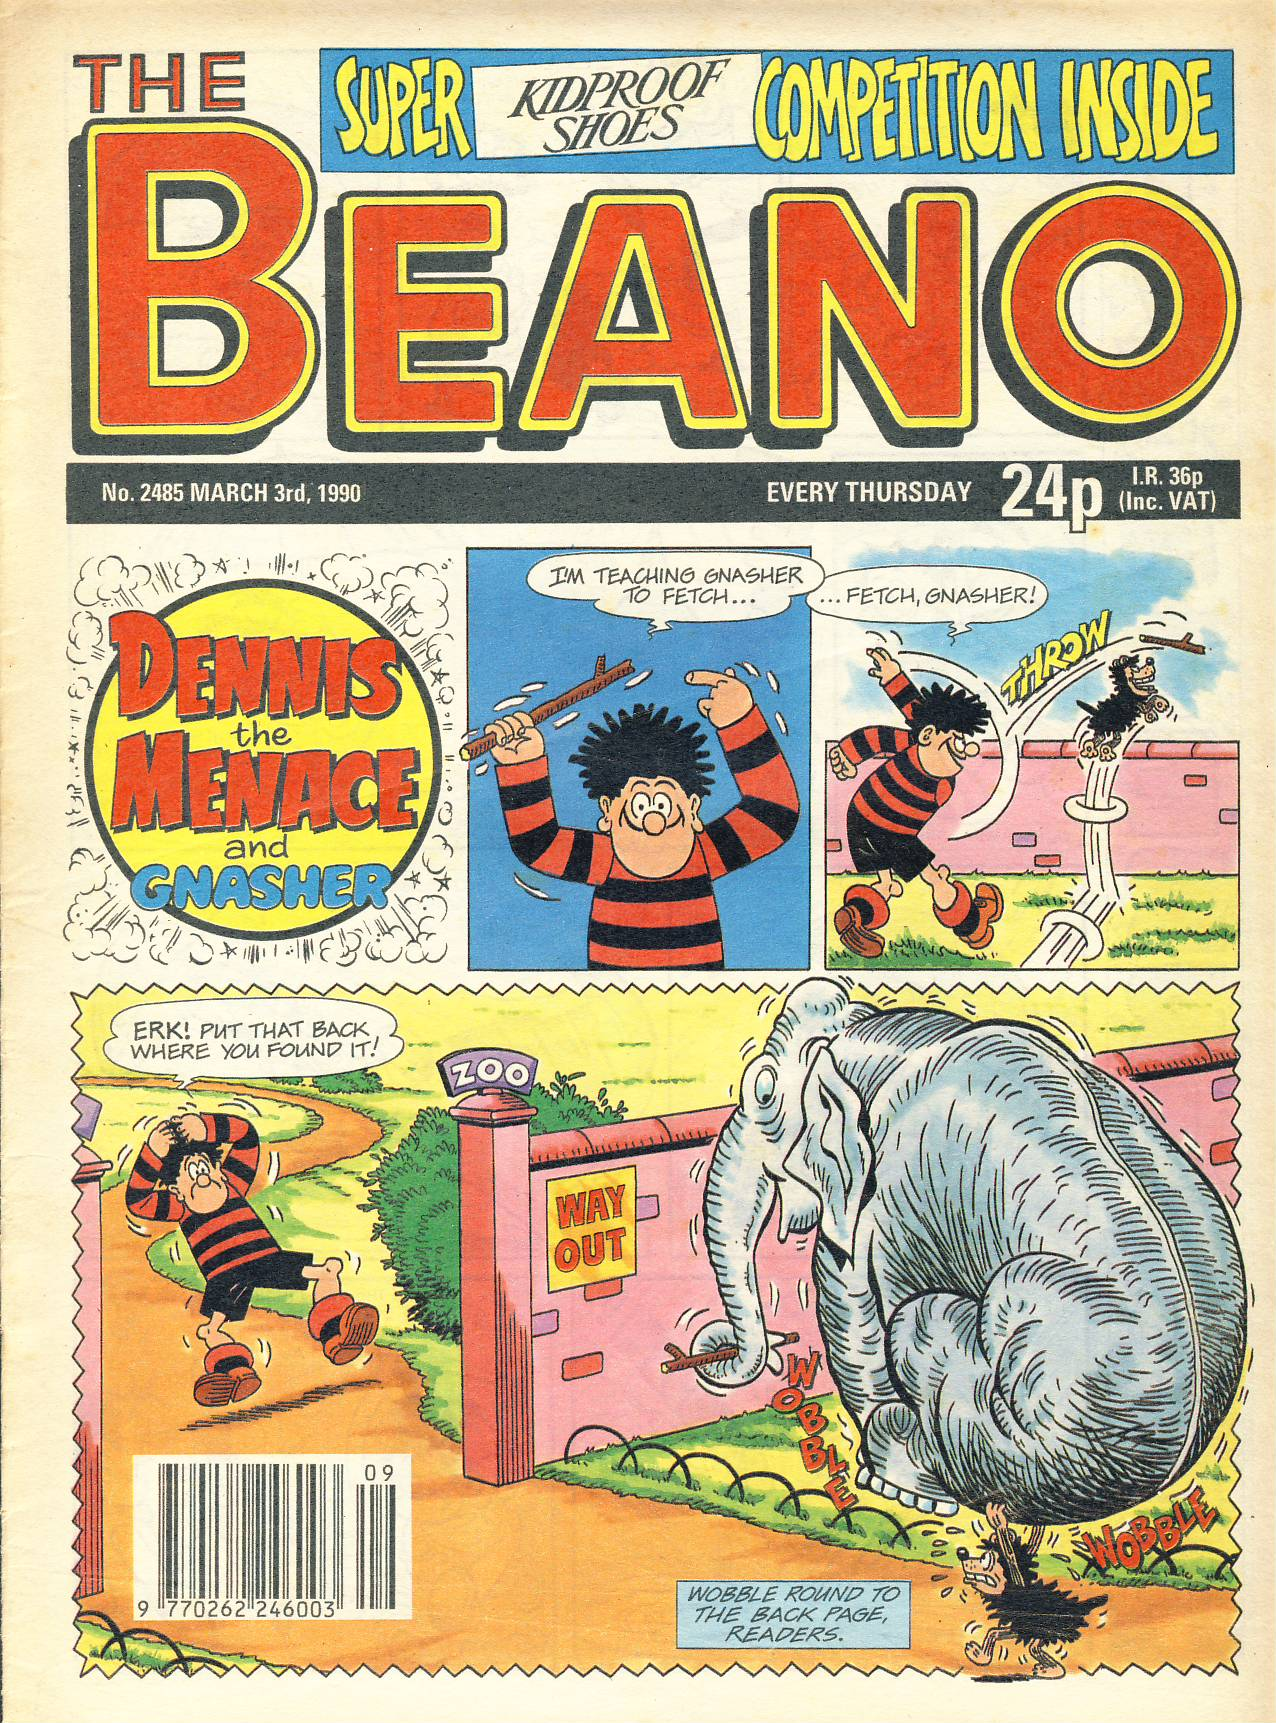 1990 March 3rd BEANO vintage comic Good Gift Christmas Present Birthday Anniversary ref297a pre-owned item in good read condition.